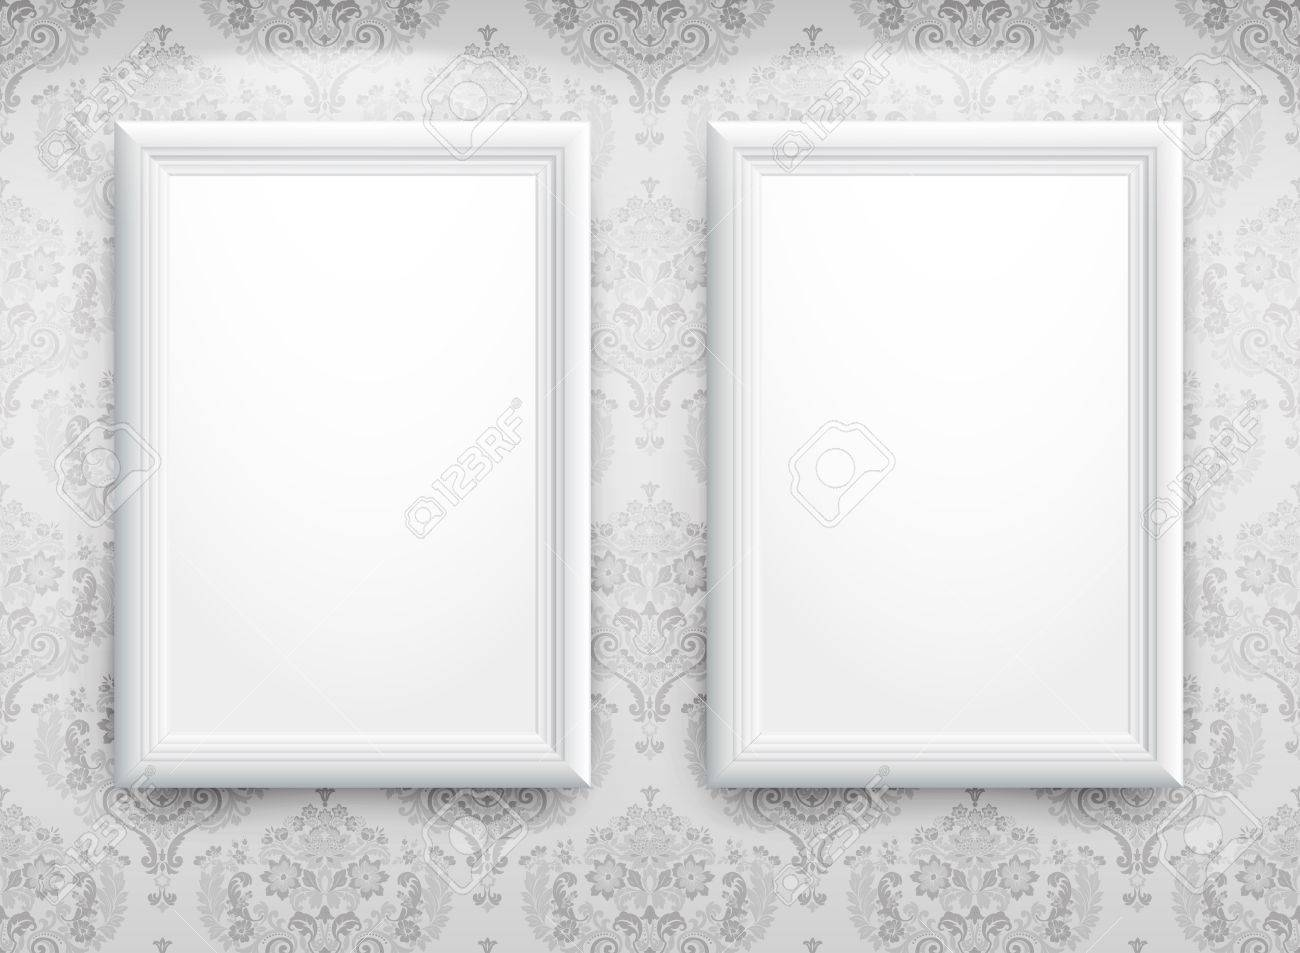 3d empty frames on the wall vintage background royalty free - Empty Frame